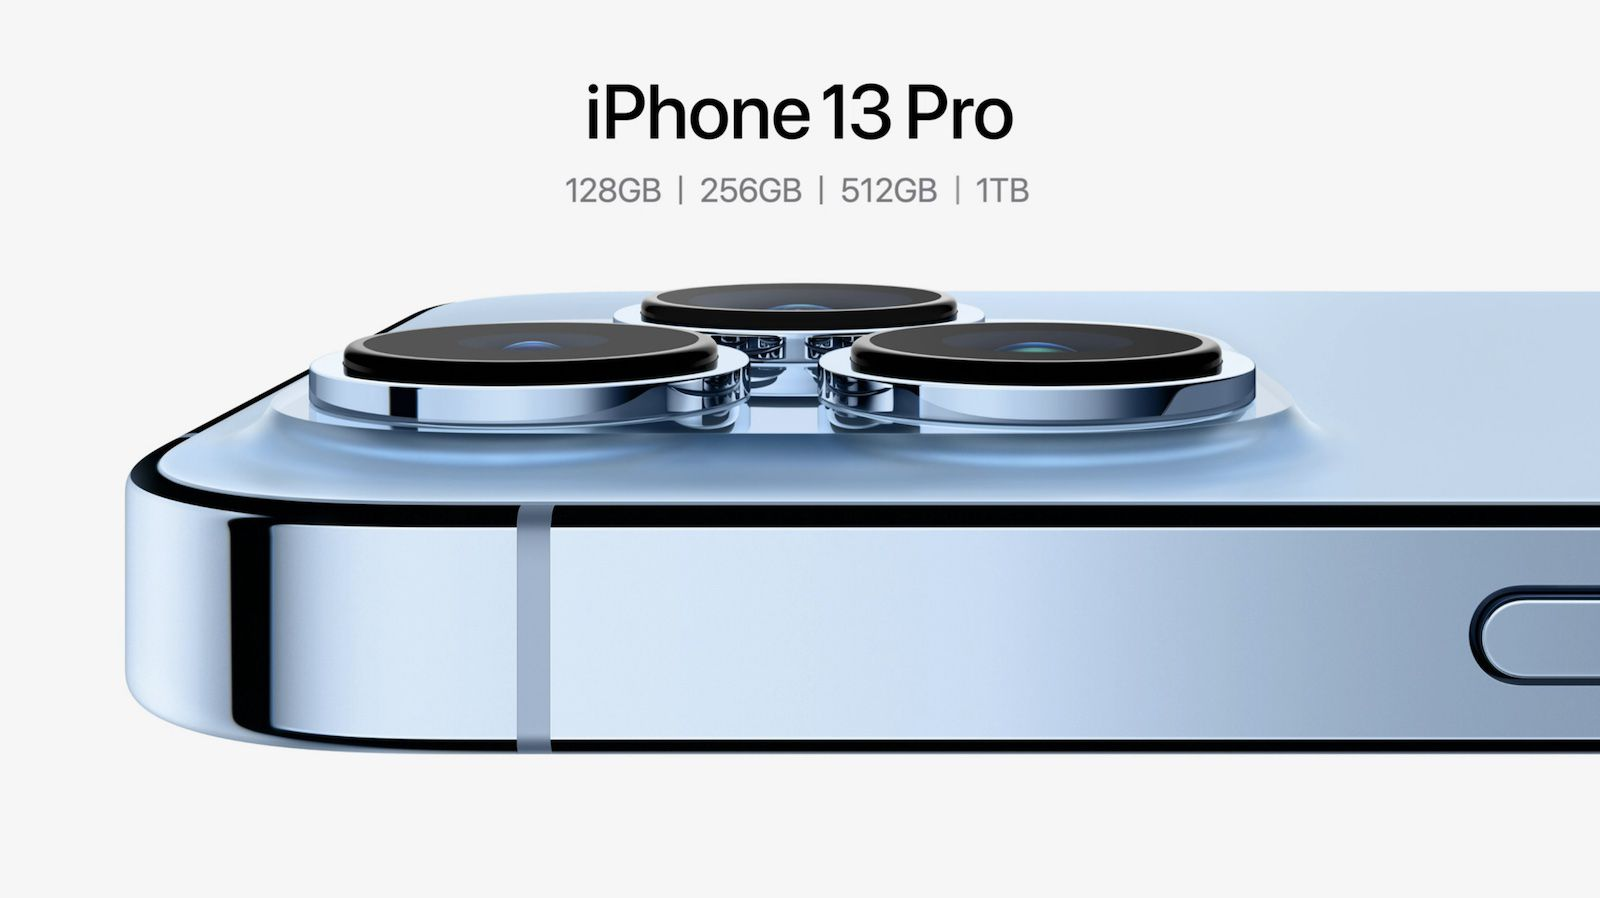 iPhone 13 Pro's New 1TB Storage Option Already Facing Delivery Times Into October